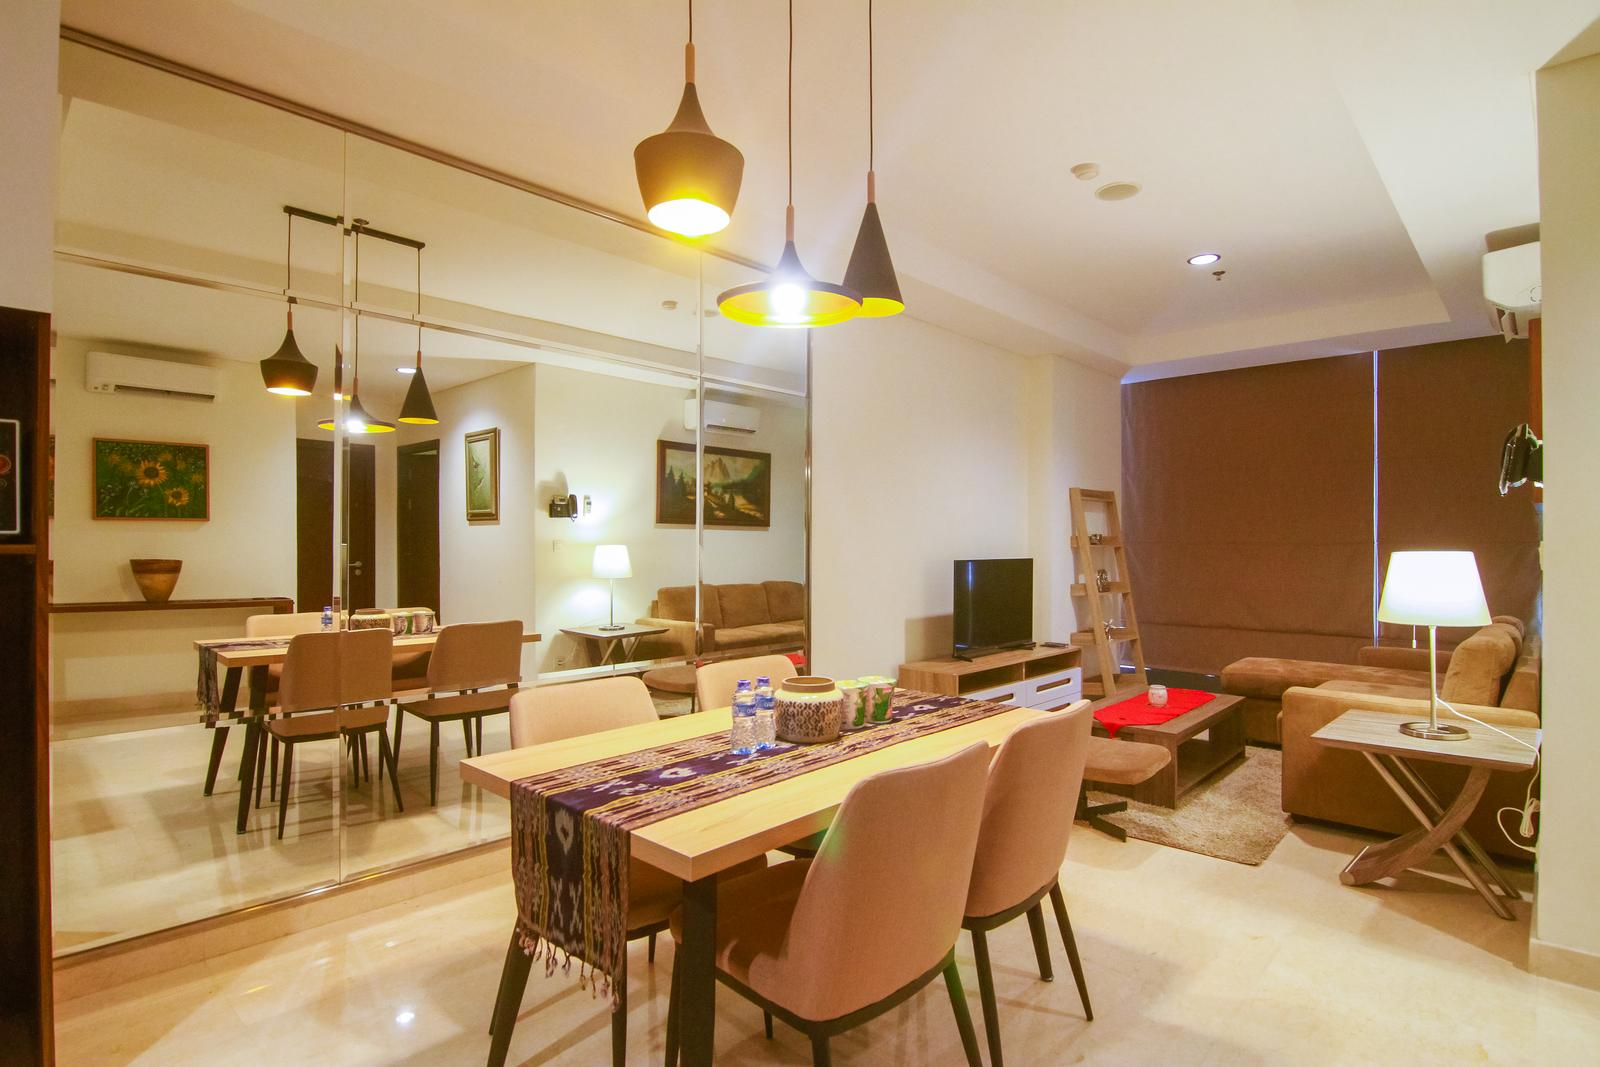 Lavenue Apartemen Pancoran - 2BR Premium L'avenue Apartment By Travelio